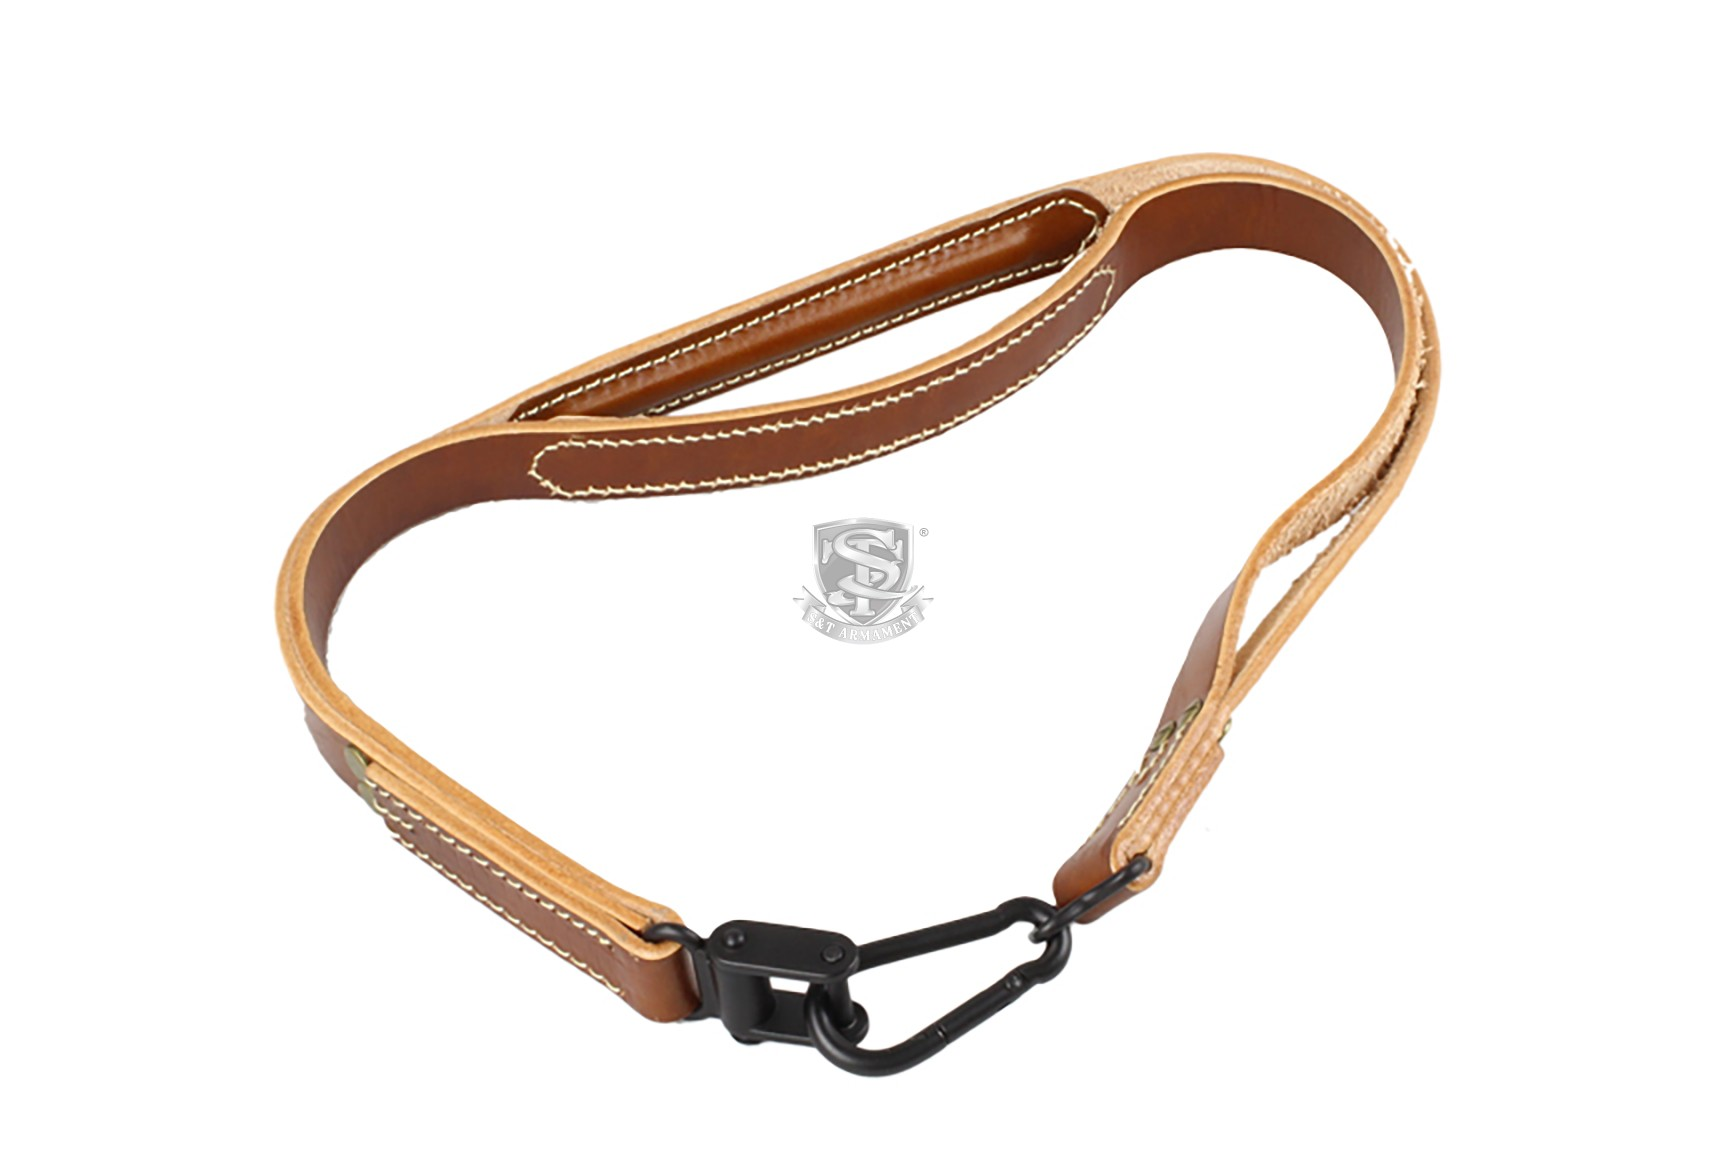 UFC High Quality MG42 LEATHER SLING for S&T / AGM MG42